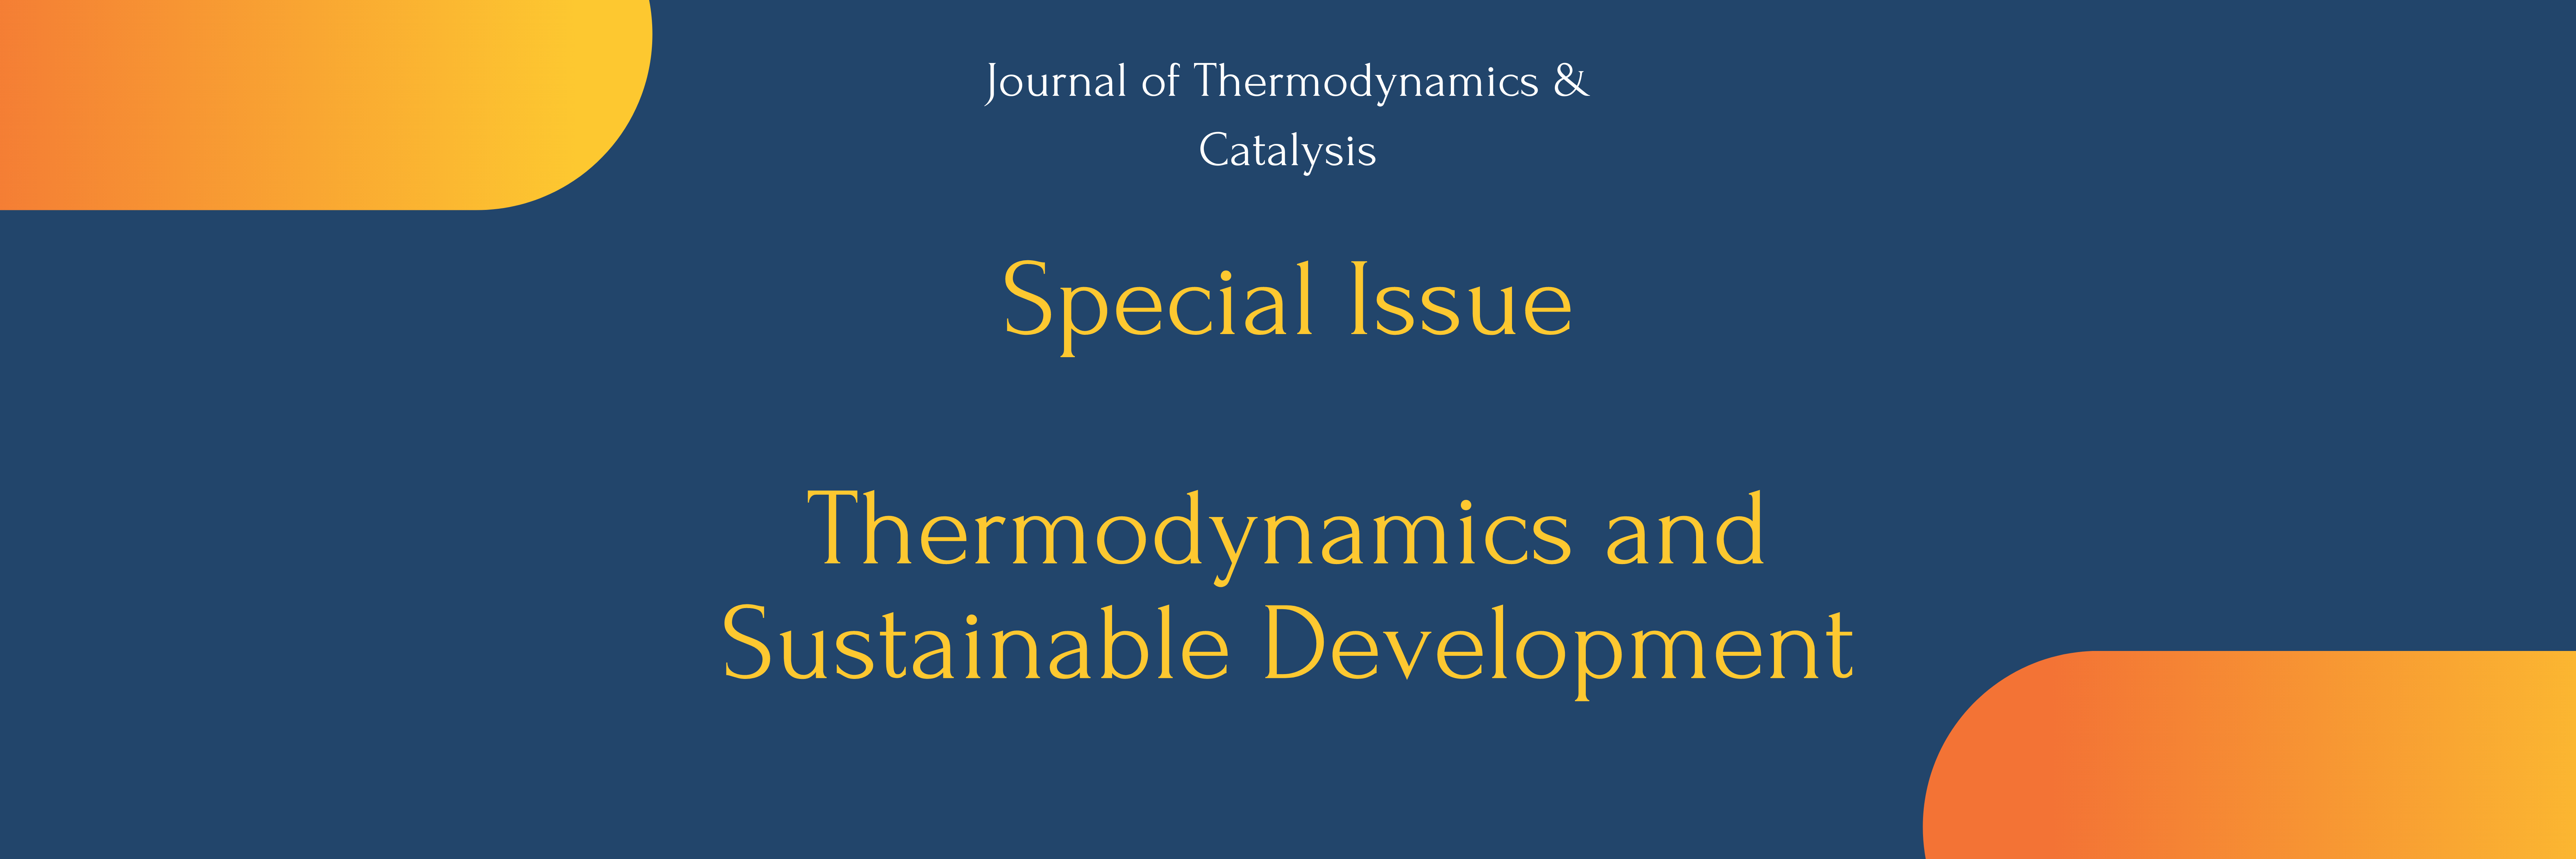 thermodynamics-and-sustainable-development-2146.png